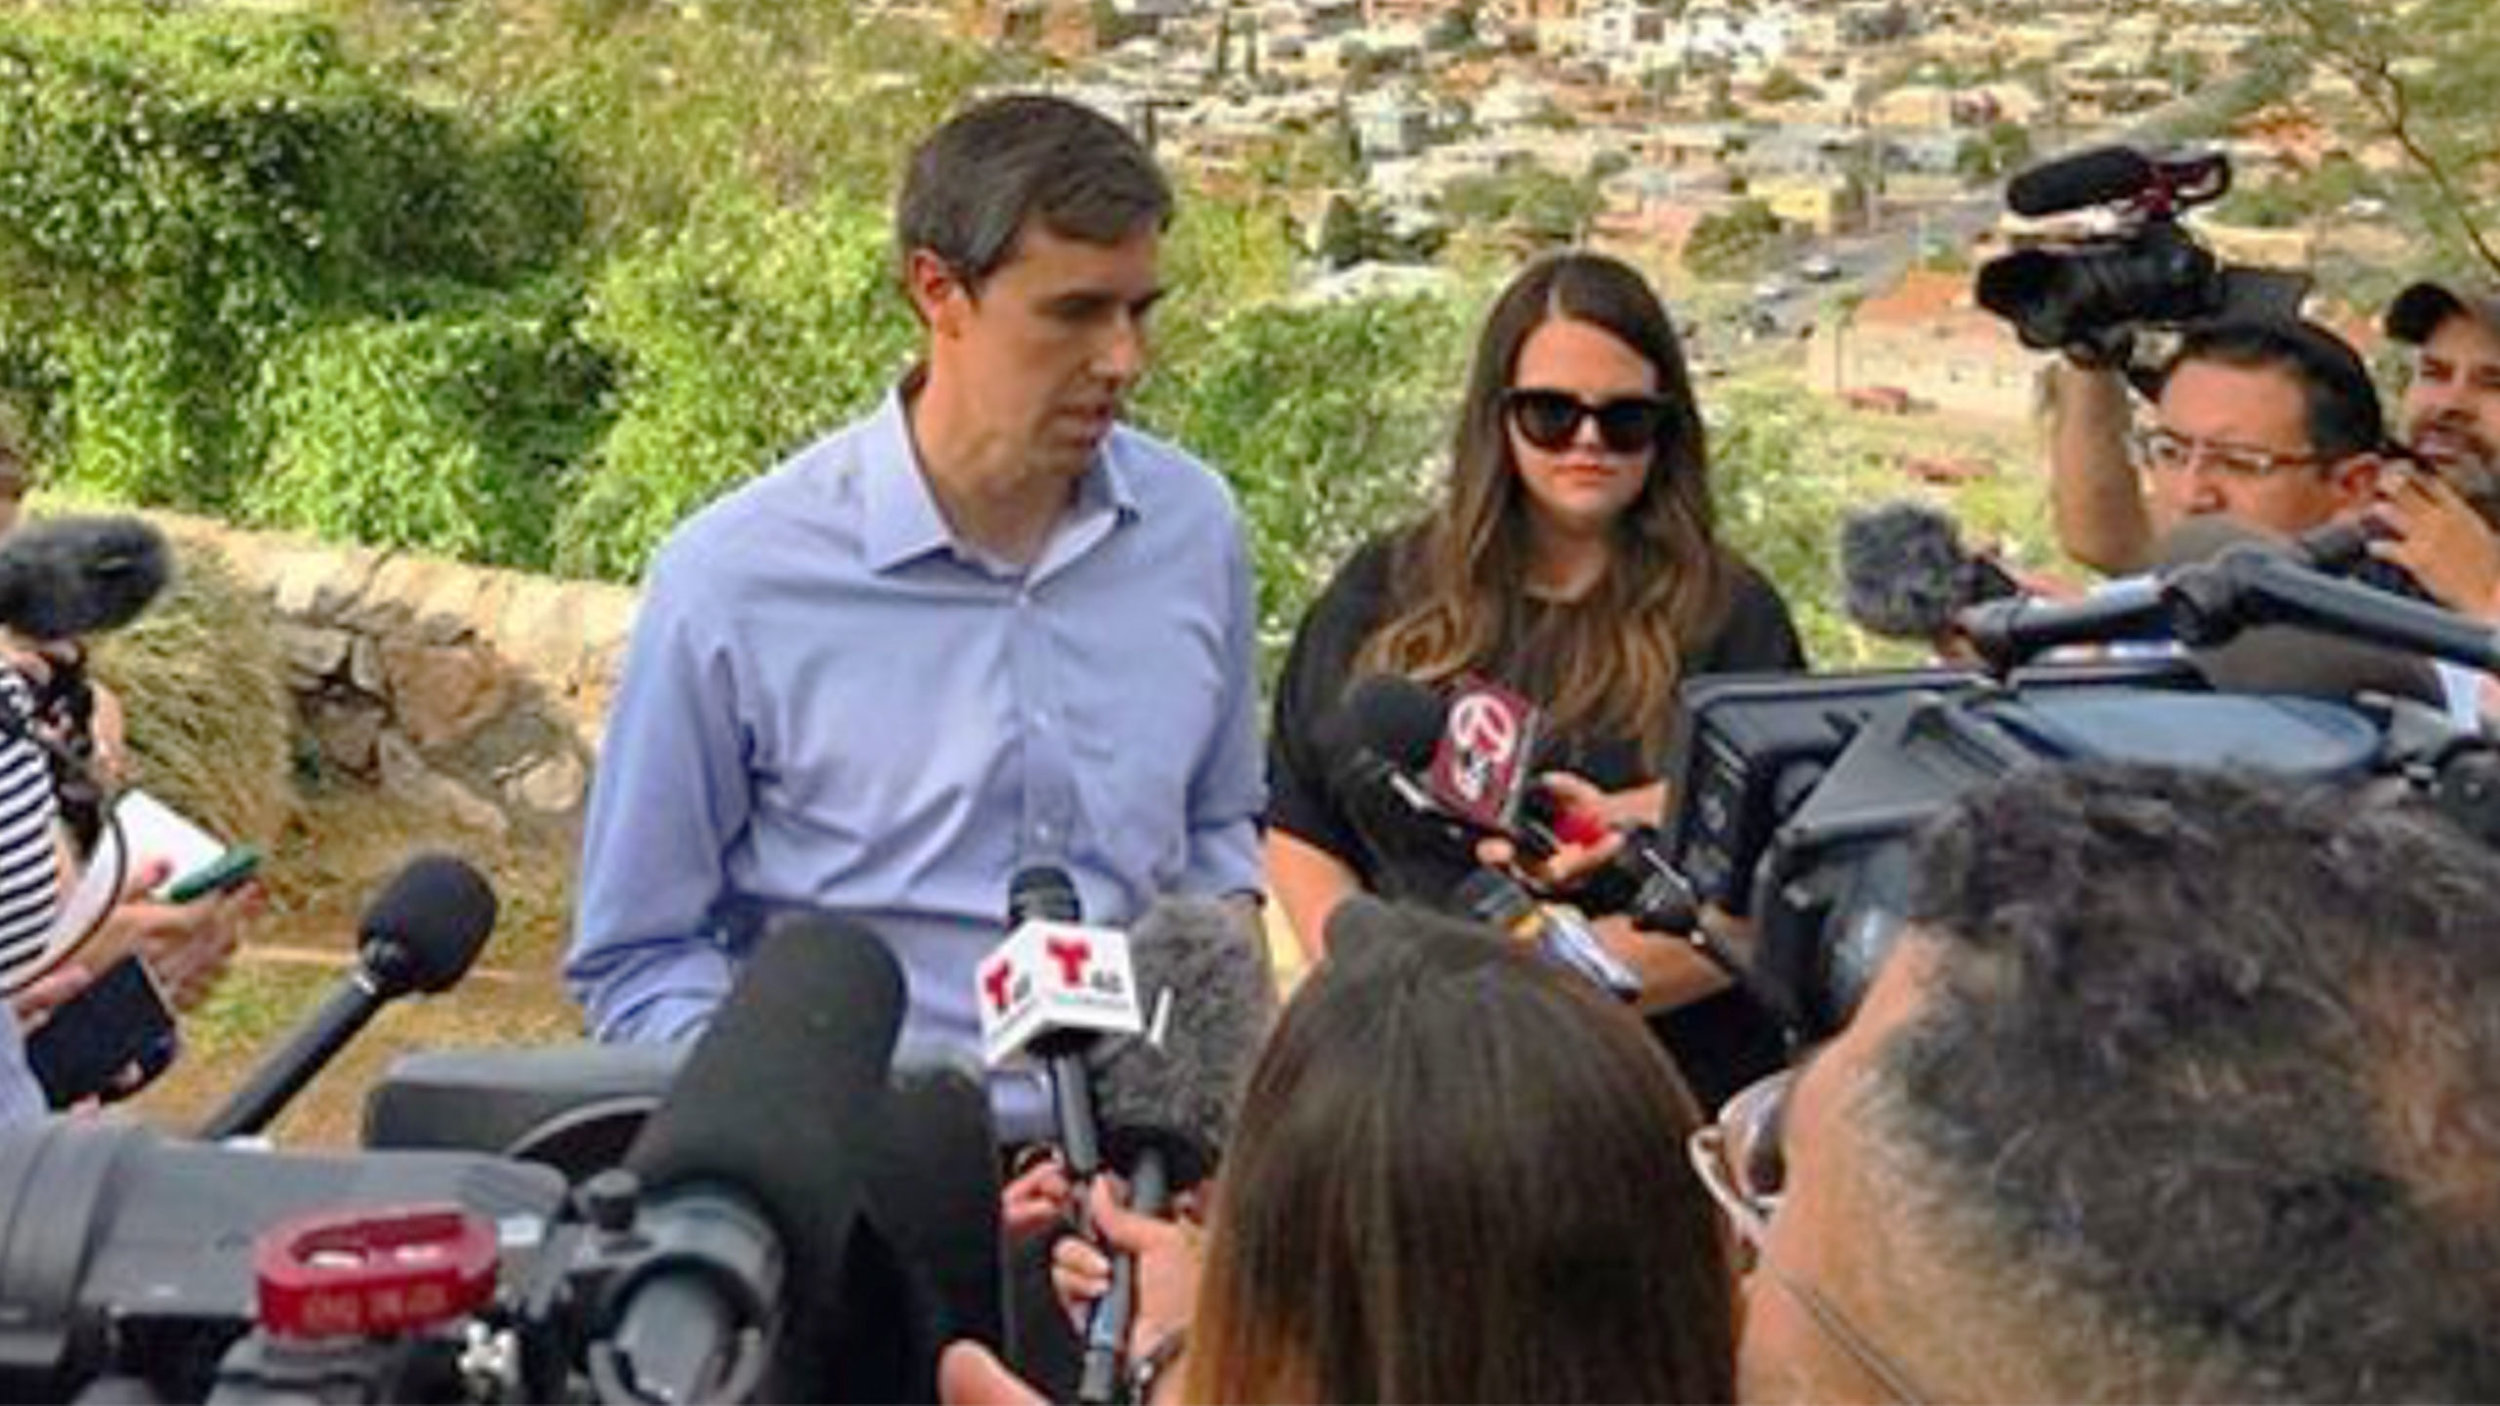 Photo of Beto O'Rourke with his press secretary Aleigha Cavalier, who falsely trashed Trump and Breitbart, pretending to care about illegal aliens and black adults at a black college. 🙄